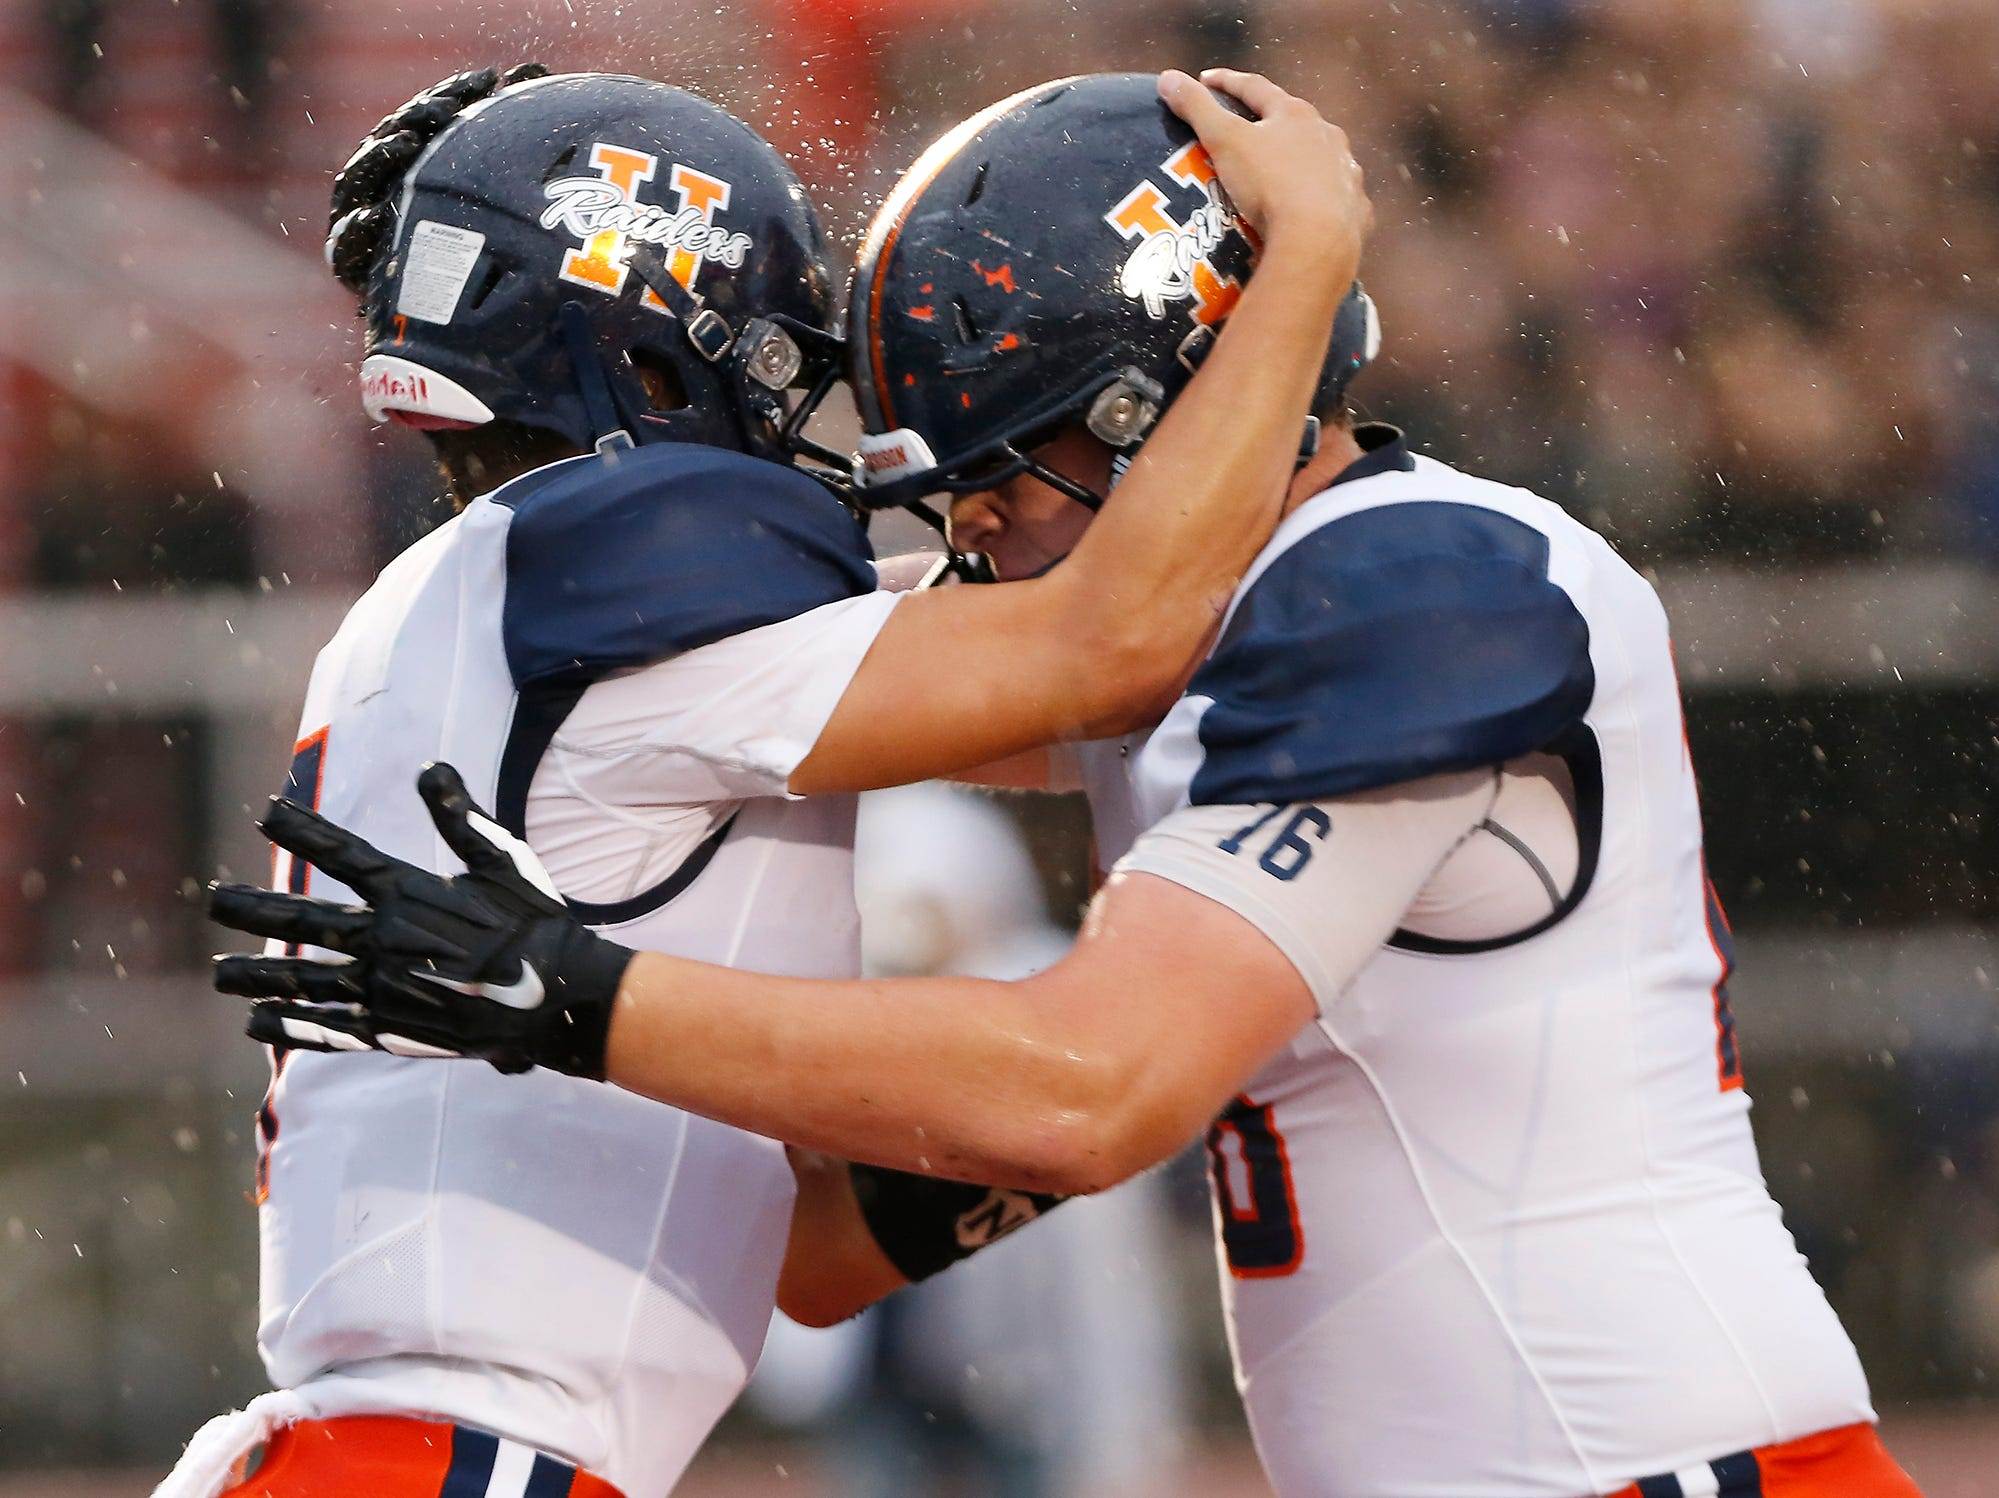 Harrison quarterback Andrew Jensen celebrates with teammate William Kern after his rushing touchdown at 11:55 in the second quarter against Lafayette Jeff Friday, September 7, 2018, at Scheumann Stadium. Jeff defeated Harrison 31-14.